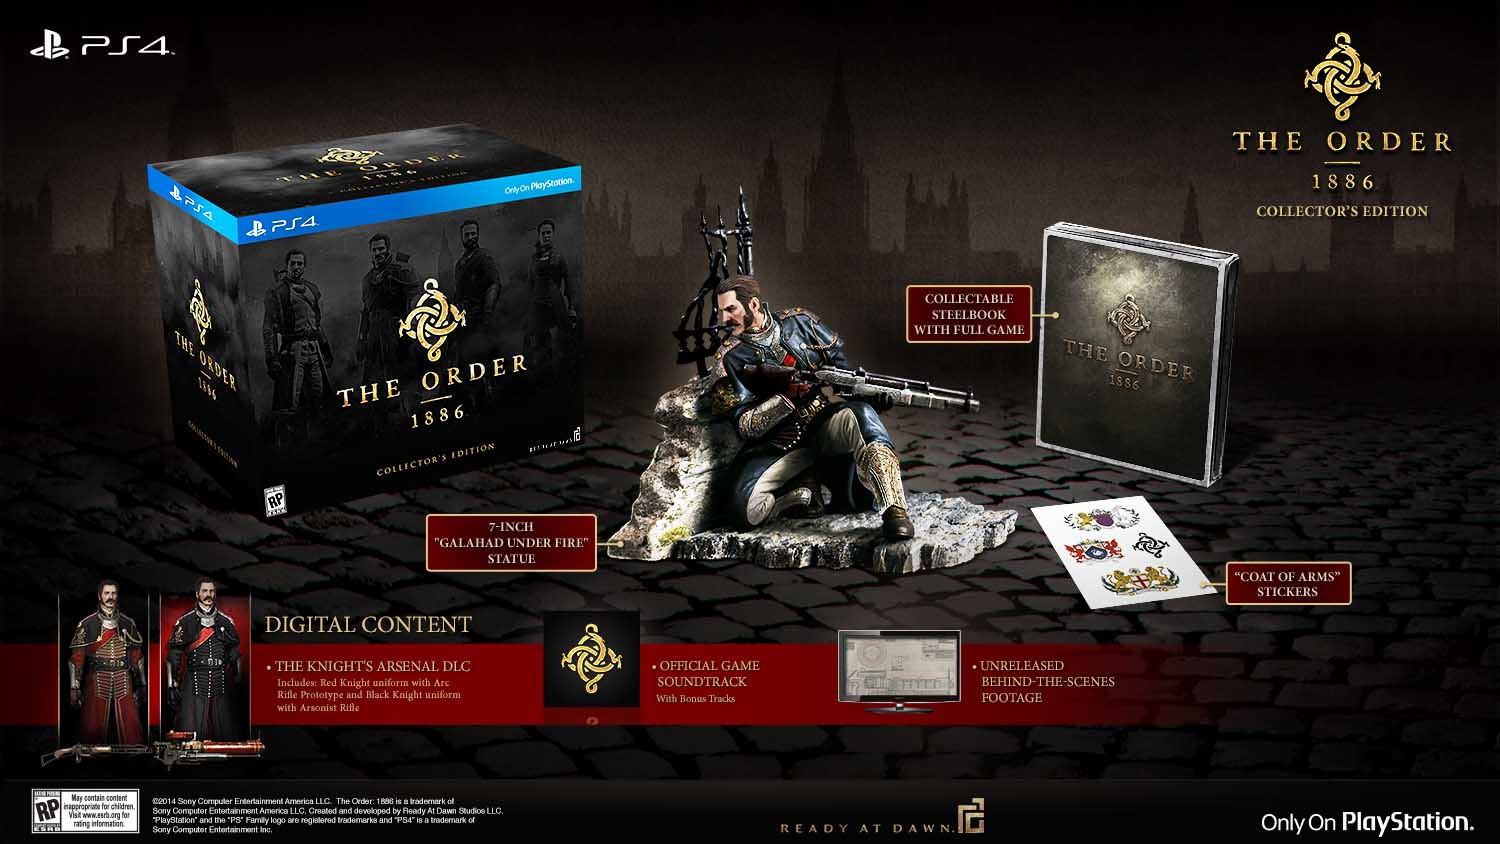 The Order 1886 E3 2014 Collectors Edition